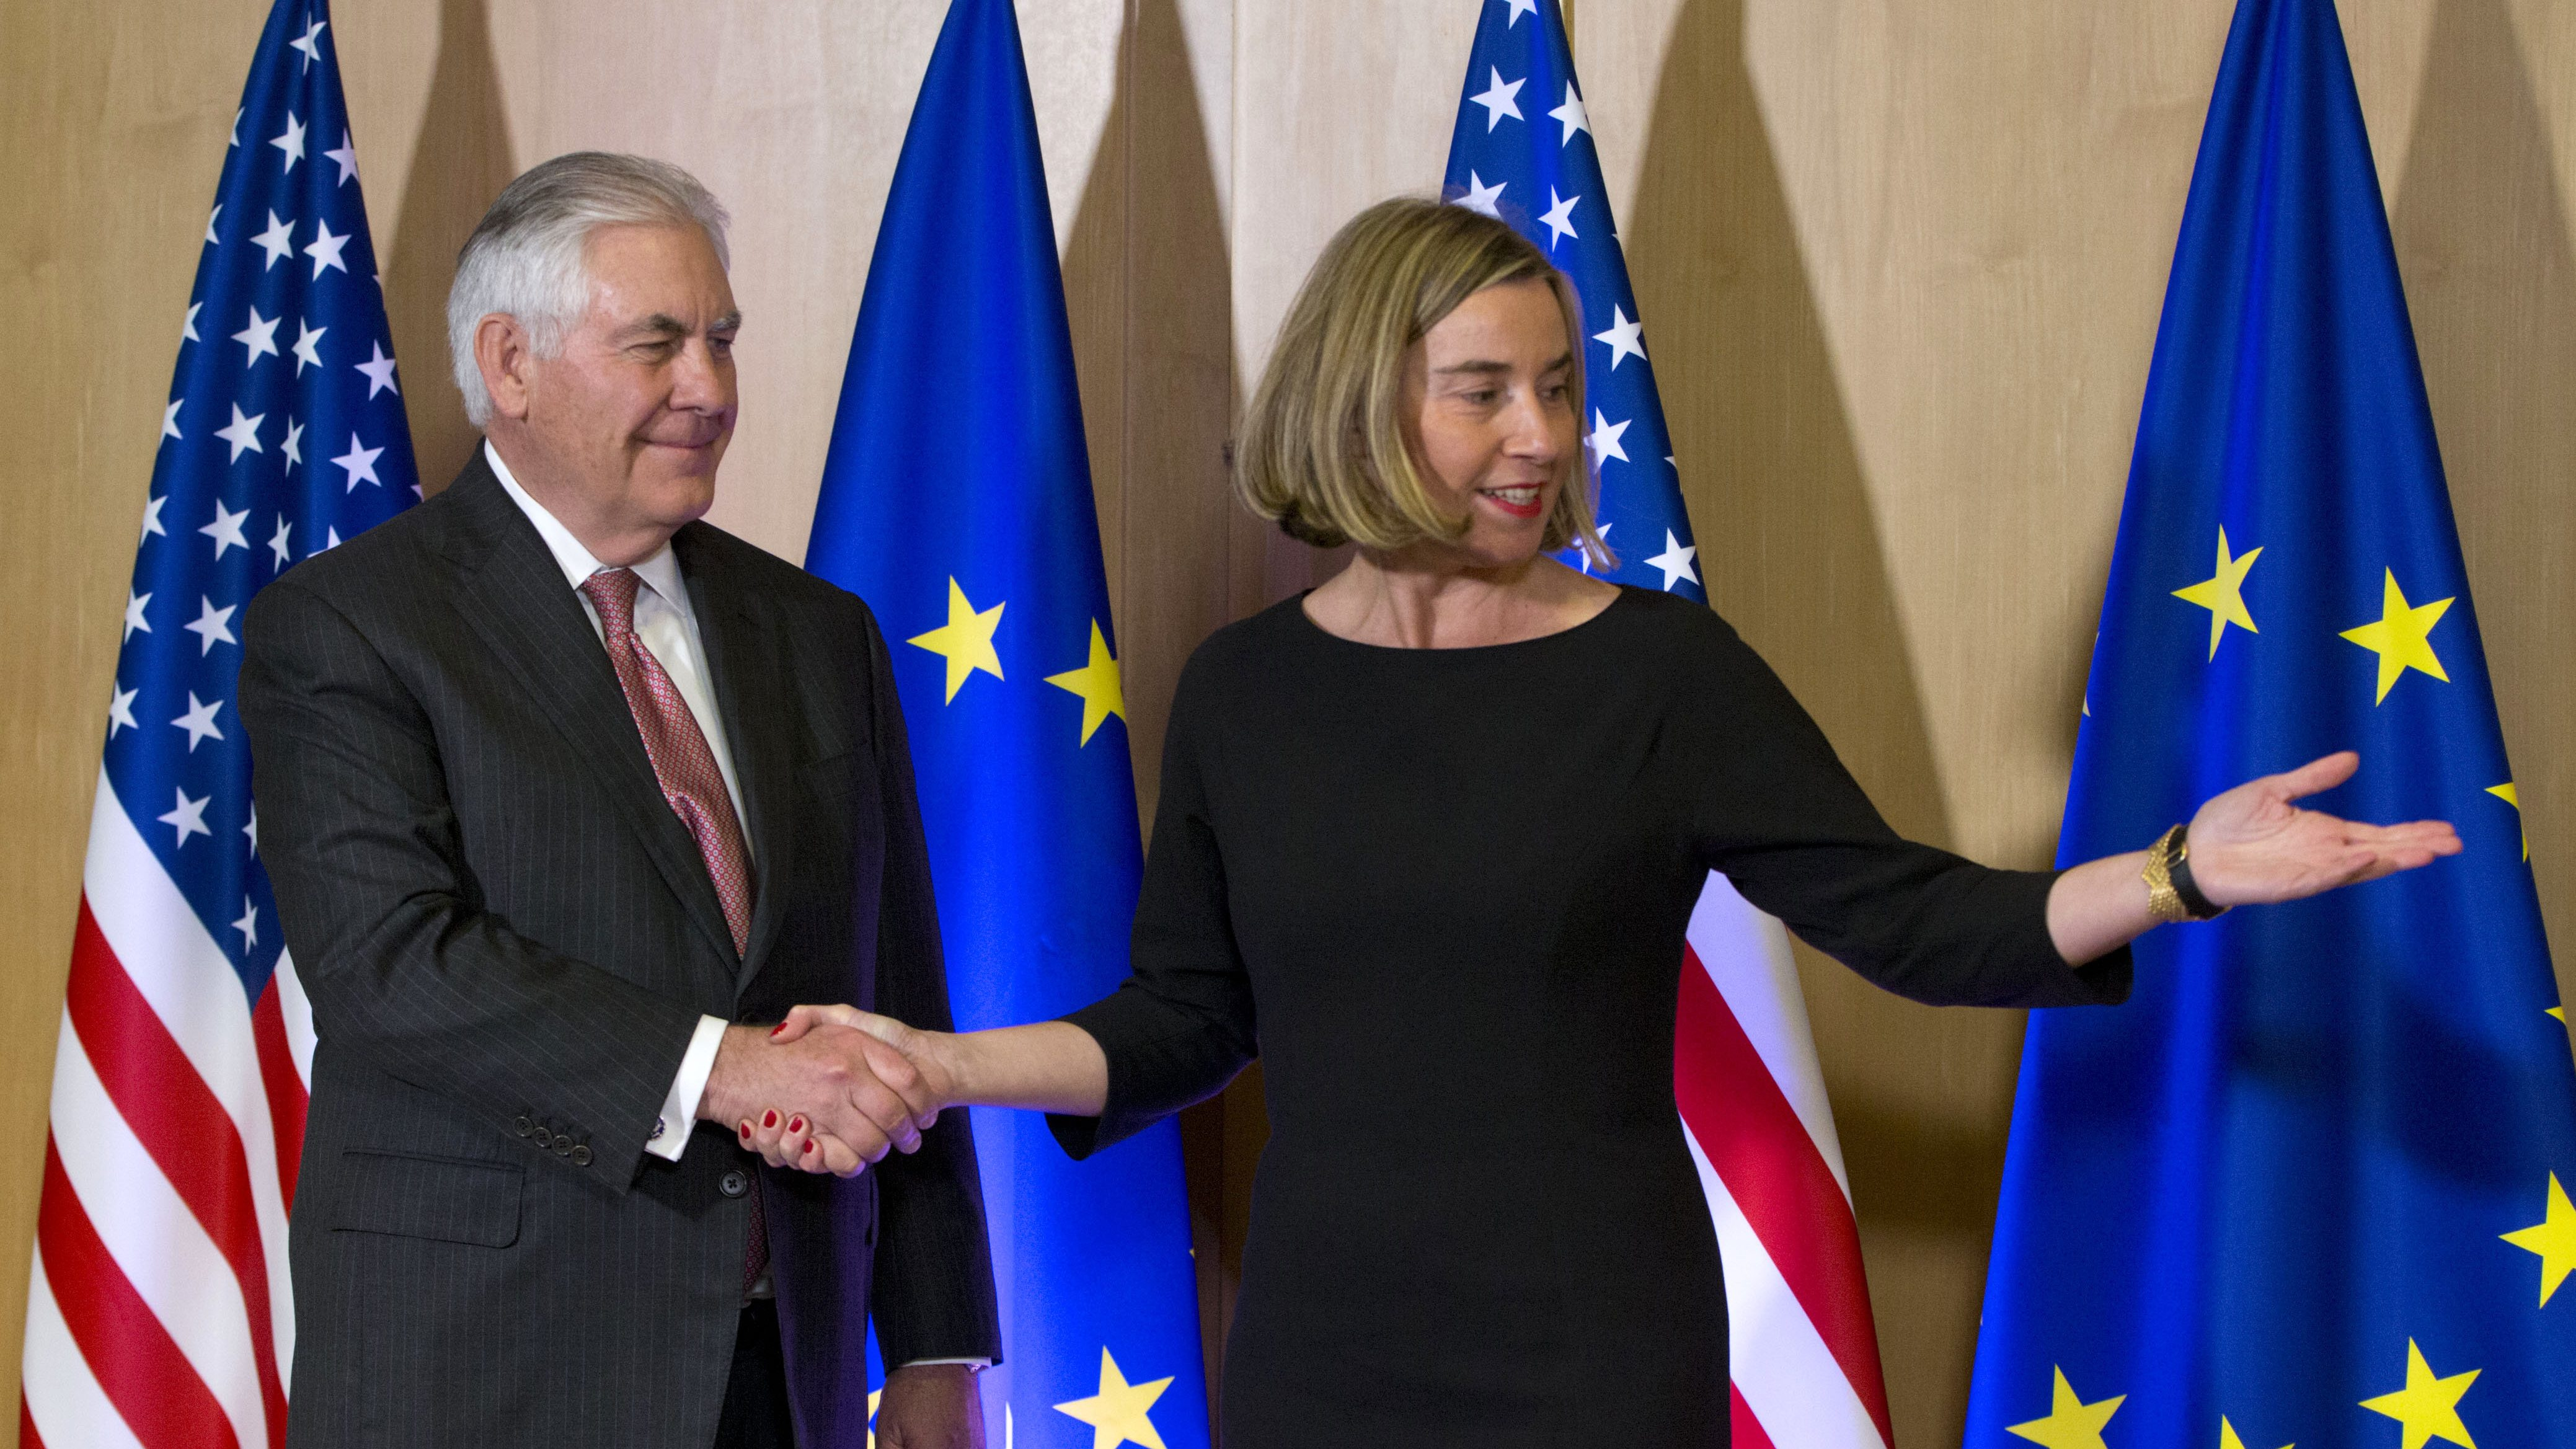 U.S. Secretary of State Rex Tillerson, left, meets with EU foreign policy chief Federica Mogherini at the EU Council building in Brussels on Tuesday, Dec. 5, 2017. U.S. Secretary of State Rex Tillerson visited European Union headquarters on Tuesday to assess trans-Atlantic relations. (AP Photo/Virginia Mayo, Pool)